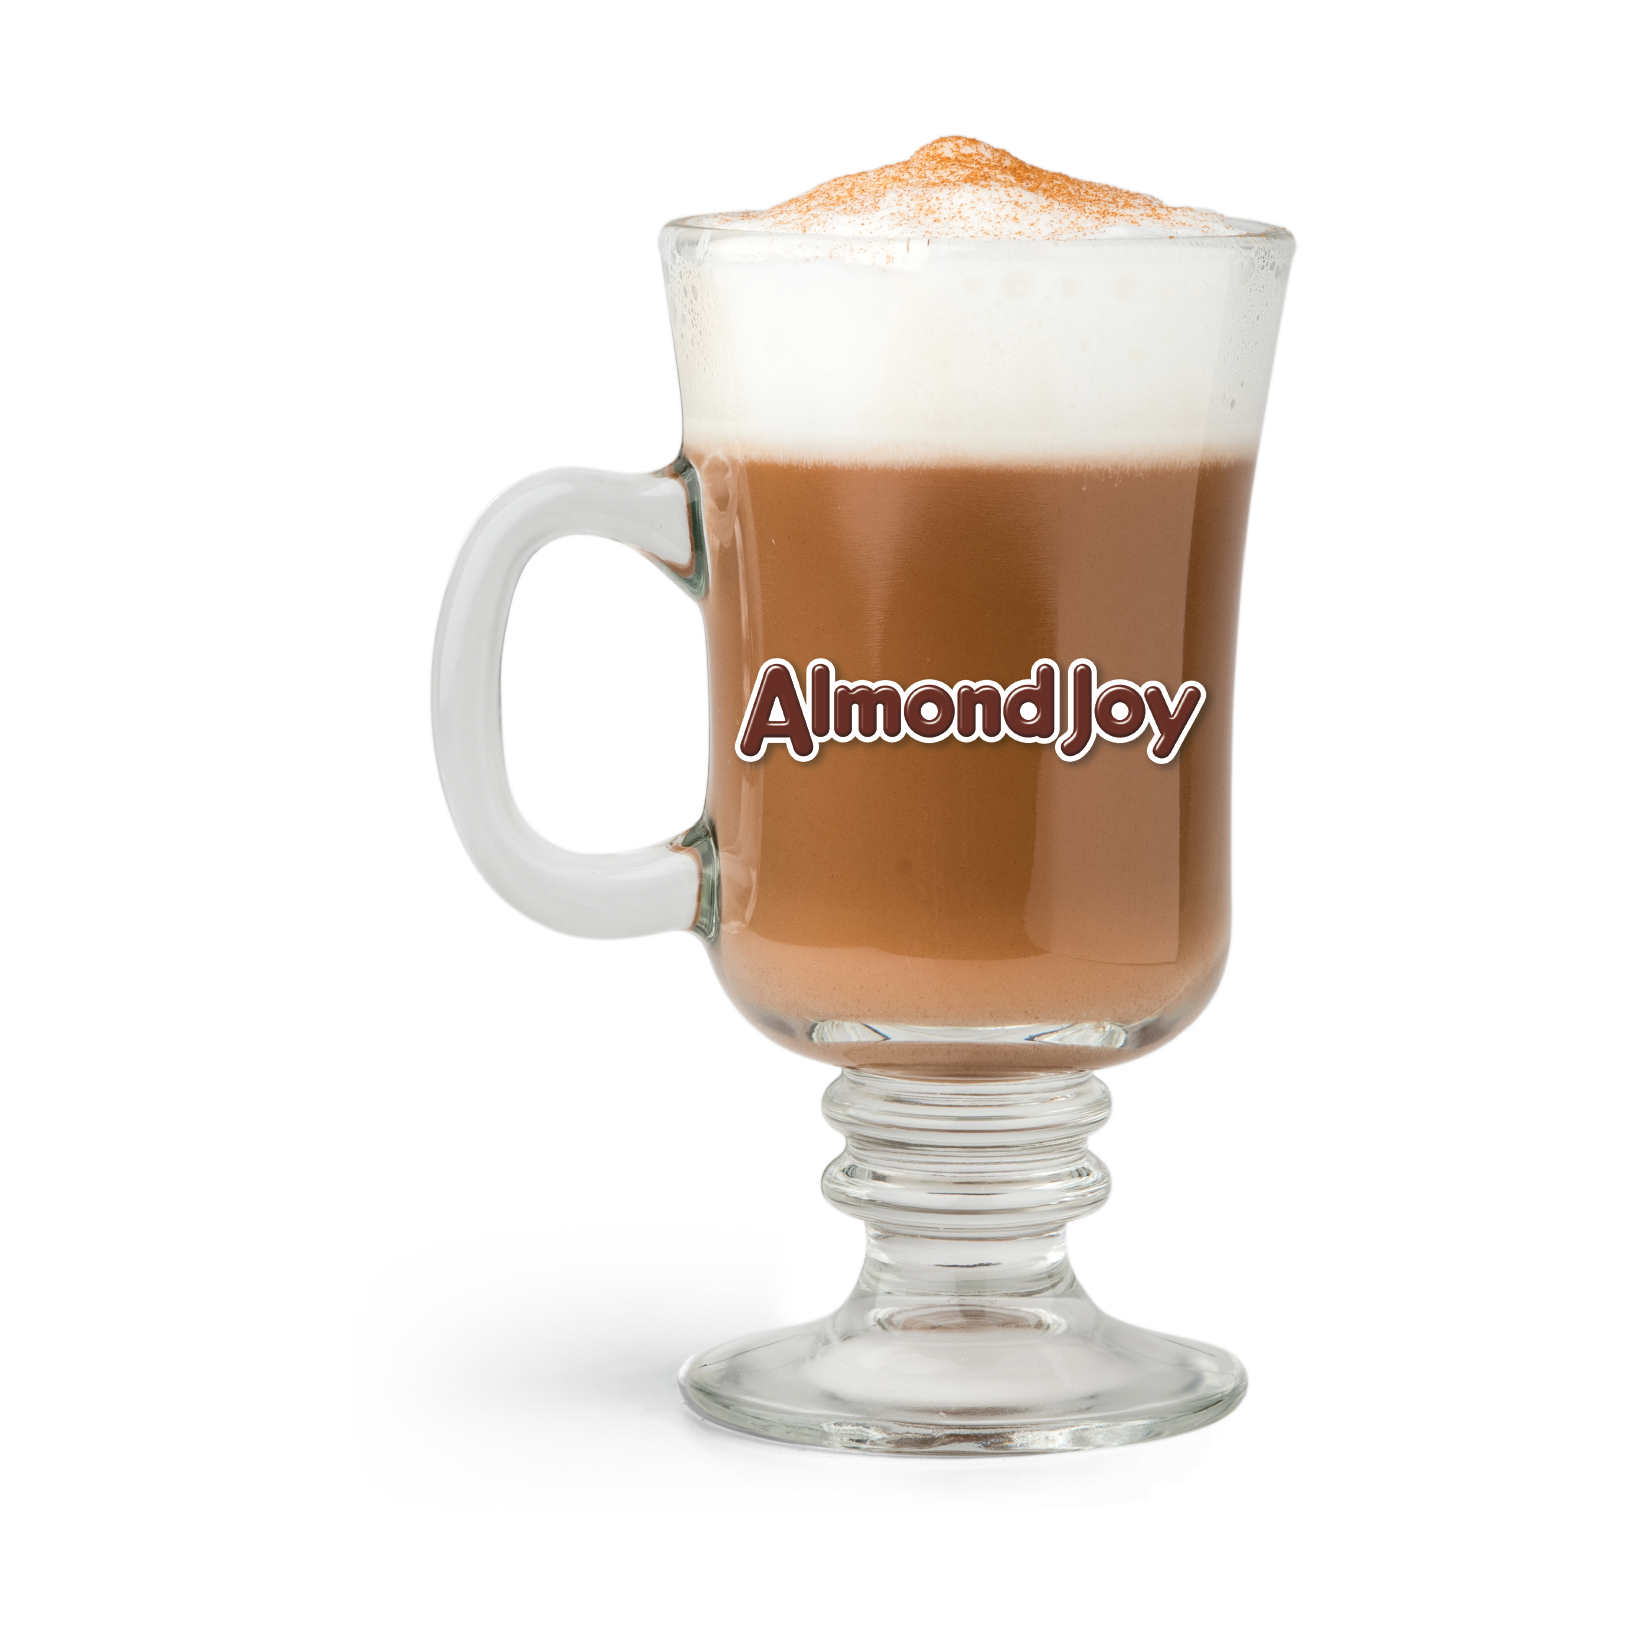 ALMOND JOY Flavored Cappuccino